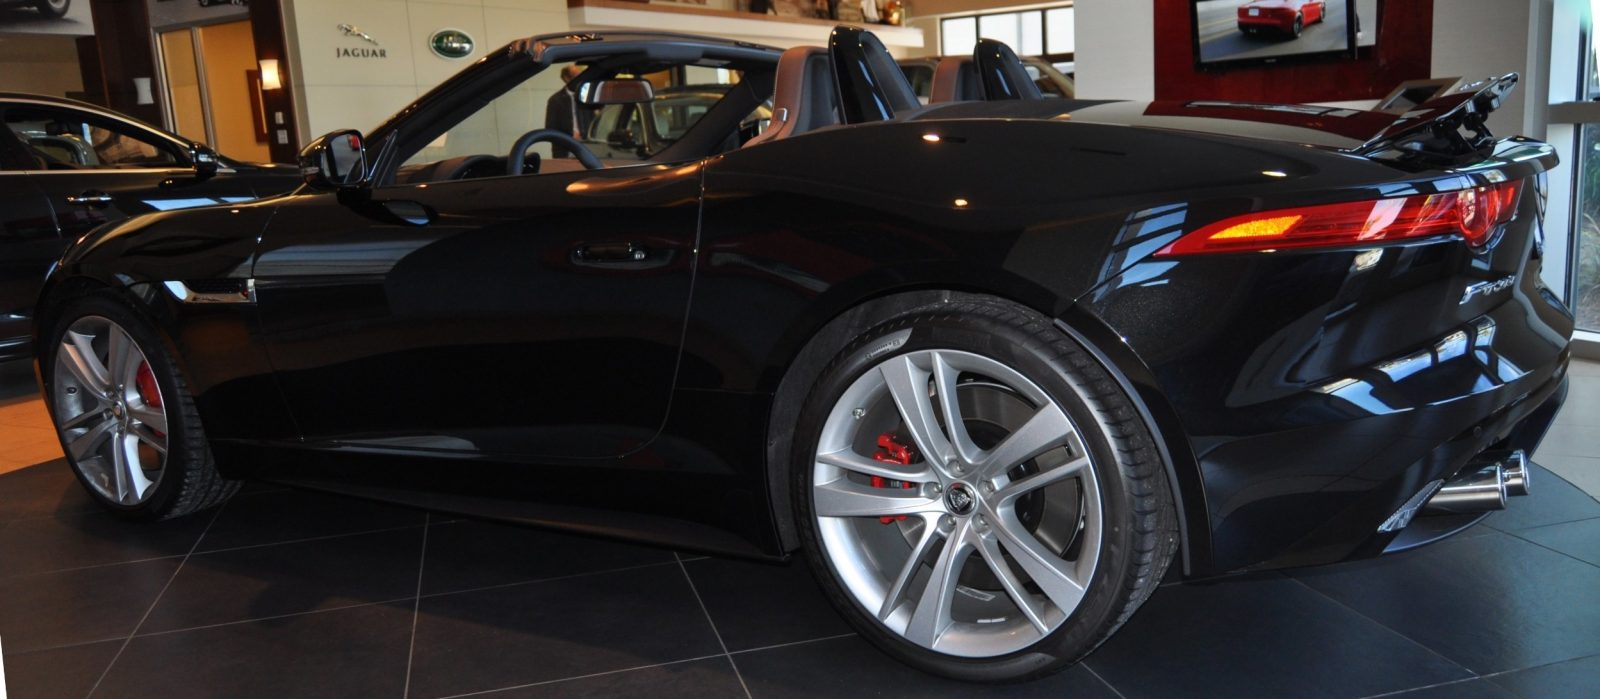 2014 Jaguar F-type S Cabrio - LED Lighting Demo and 60 High-Res Photos11